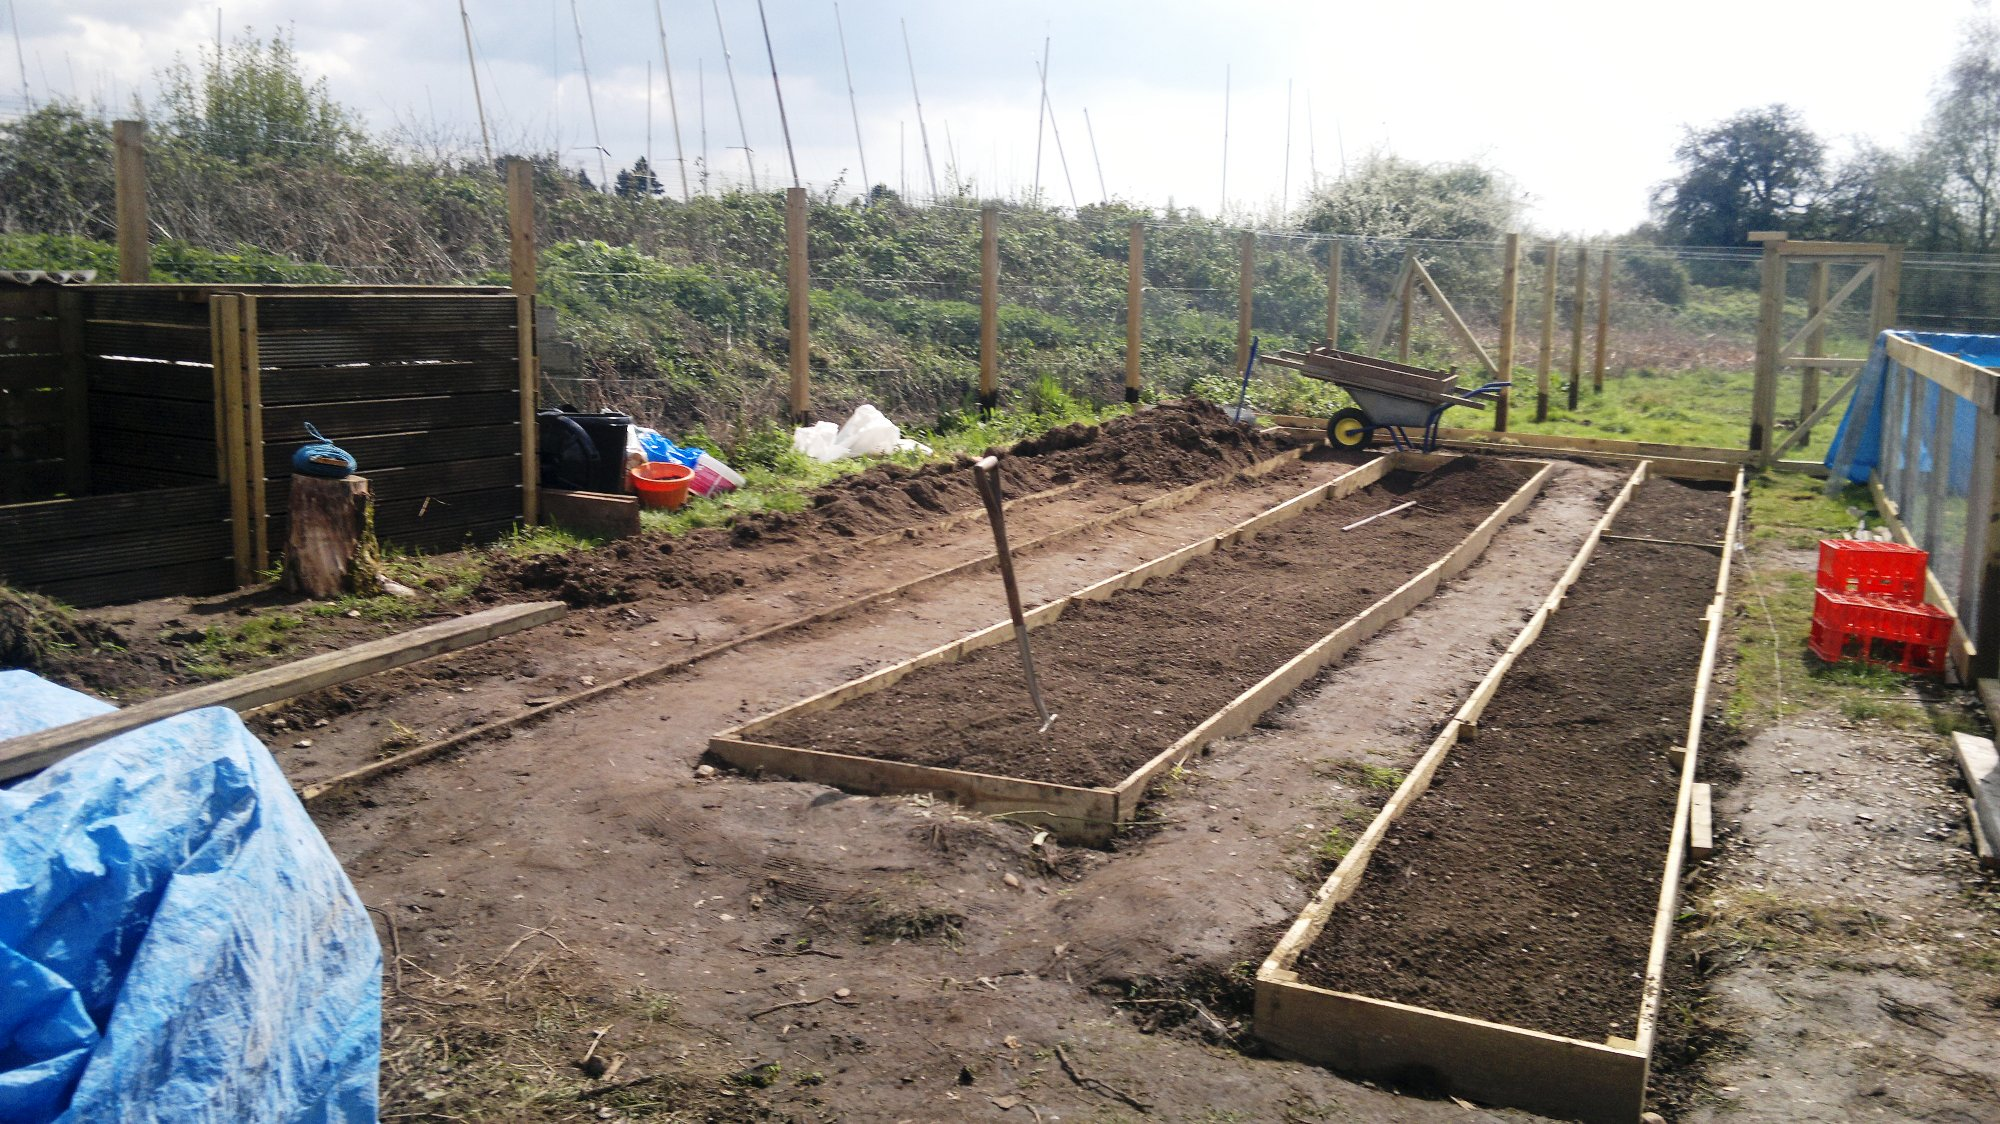 Partially prepared polytunnel beds